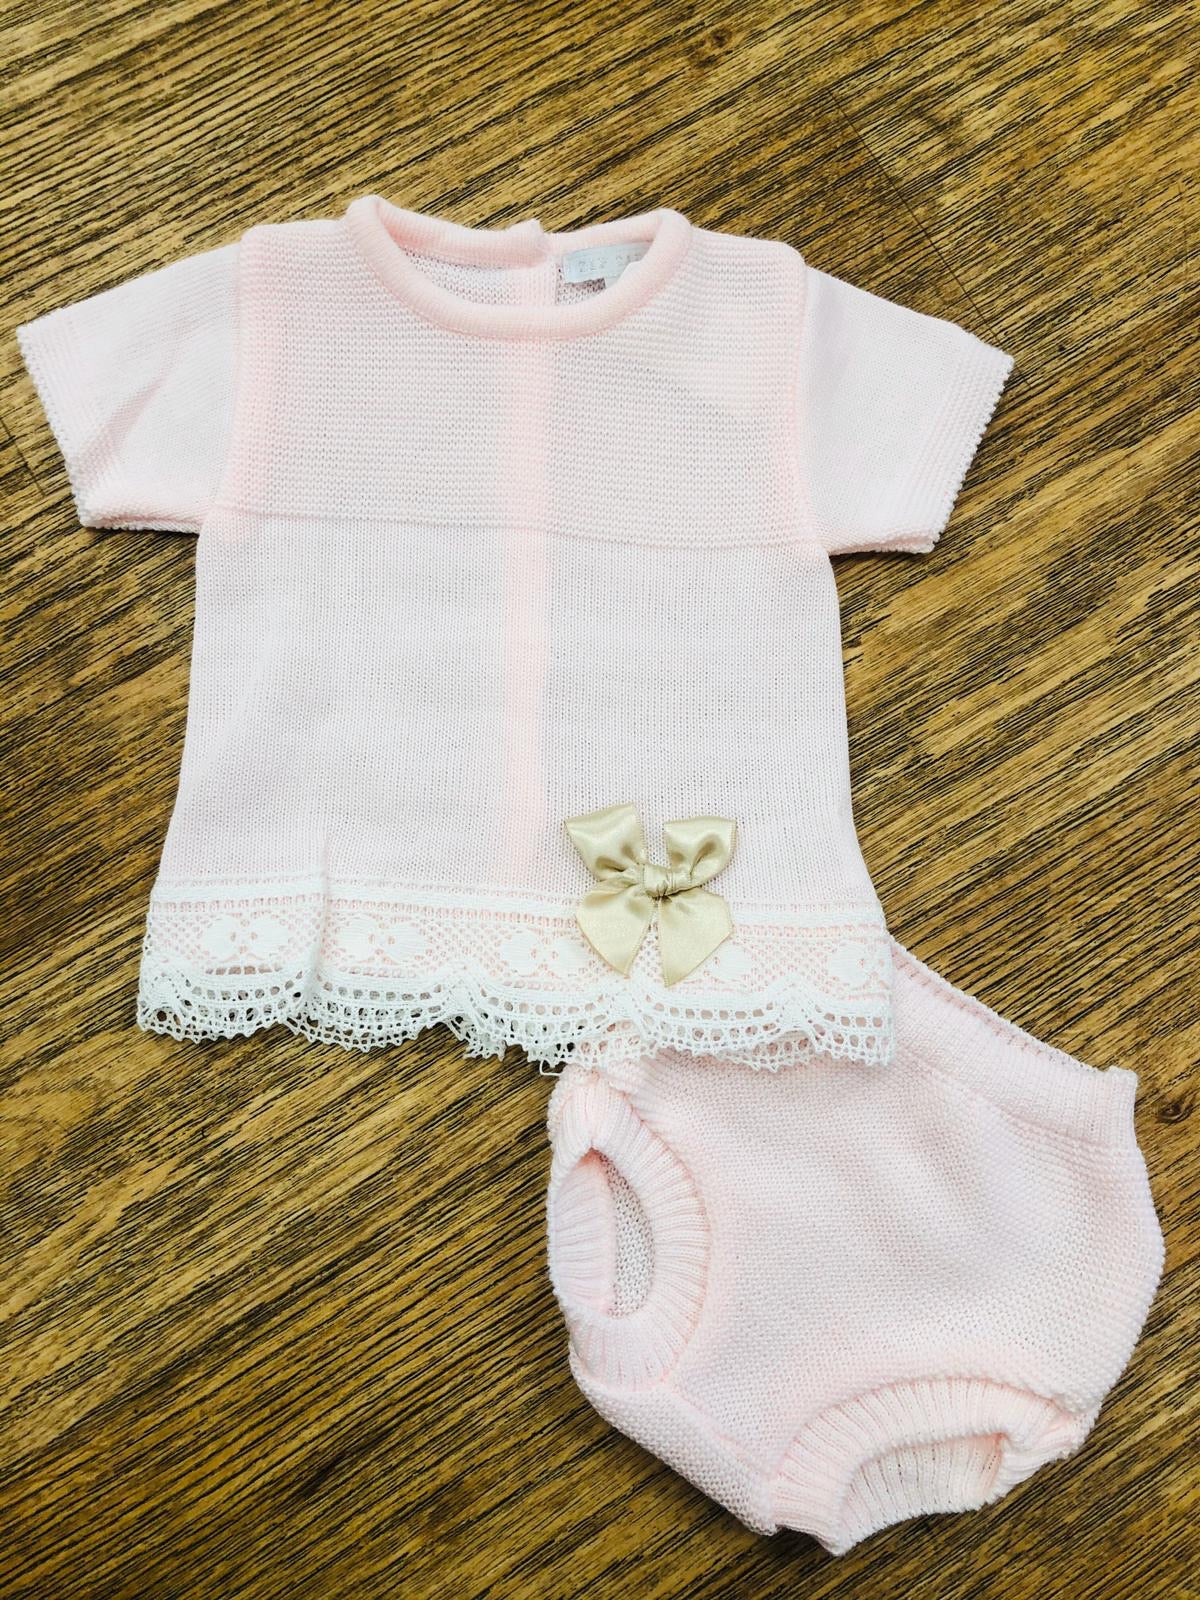 Blues Baby Pink and Camel Ribbon Jam Pants Set